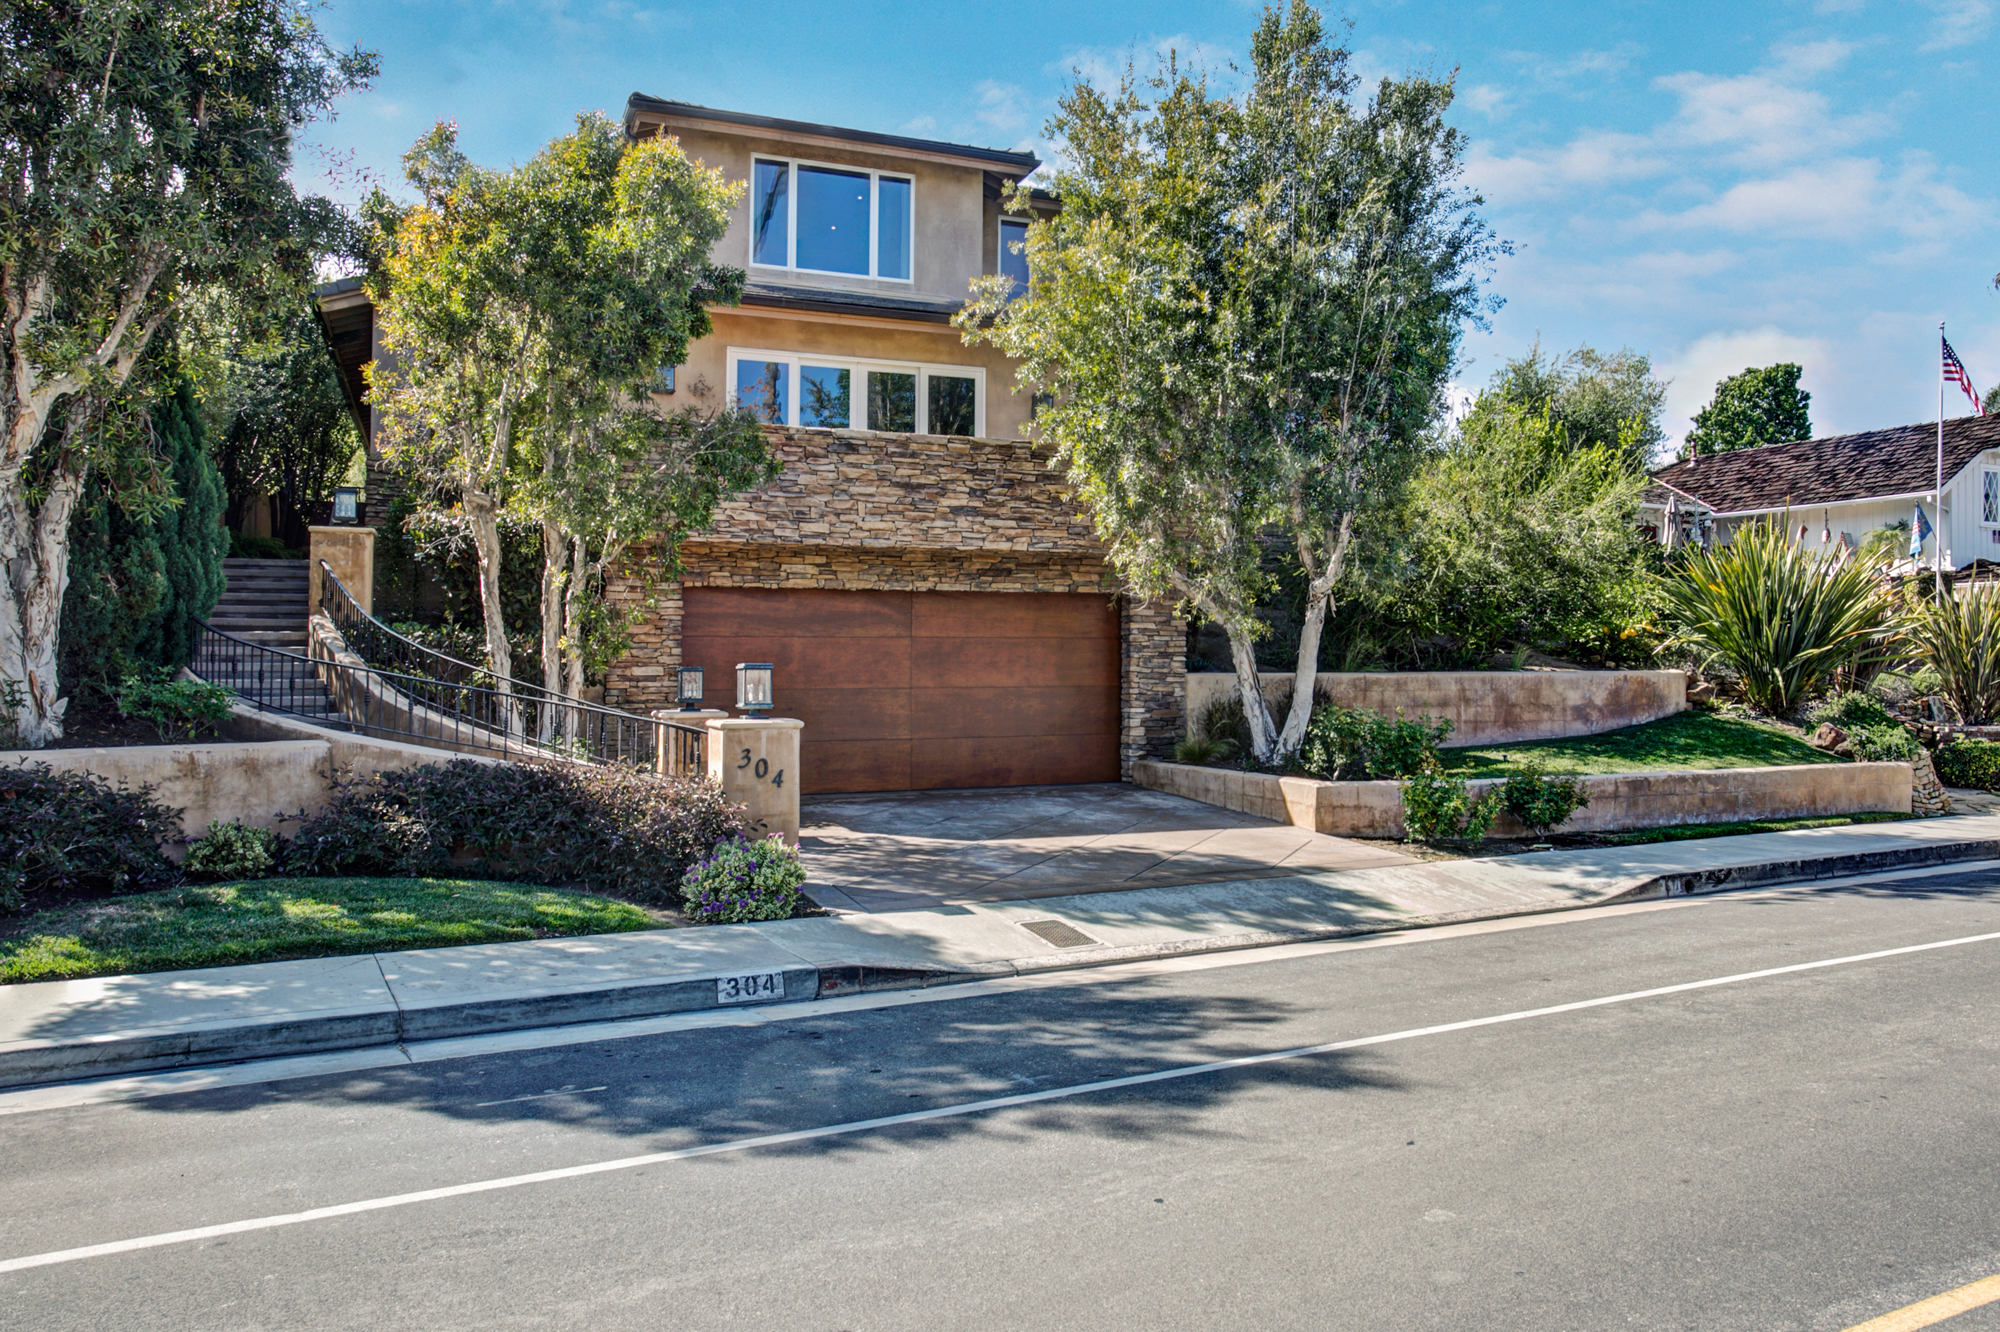 Single Family Home for Sale at San Clemente 304 W. Paseo De Cristobal San Clemente, California 92672 United States